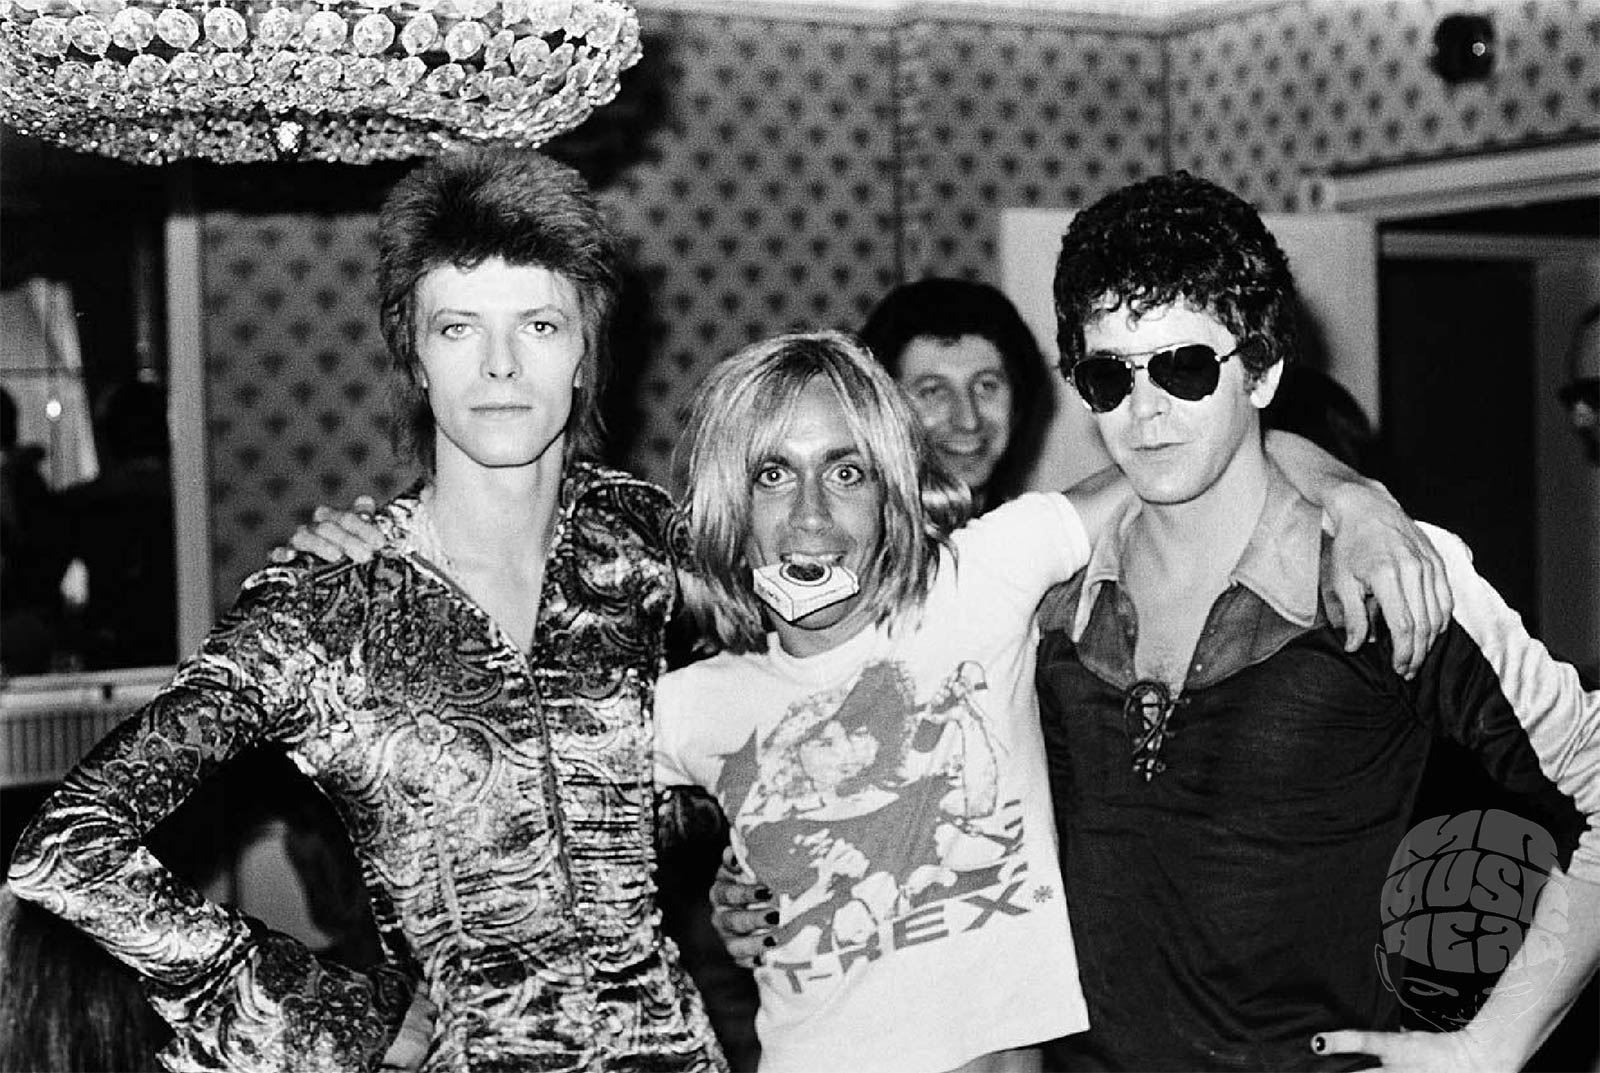 mick rock_david bowie_iggy pop_lou reed.jpg